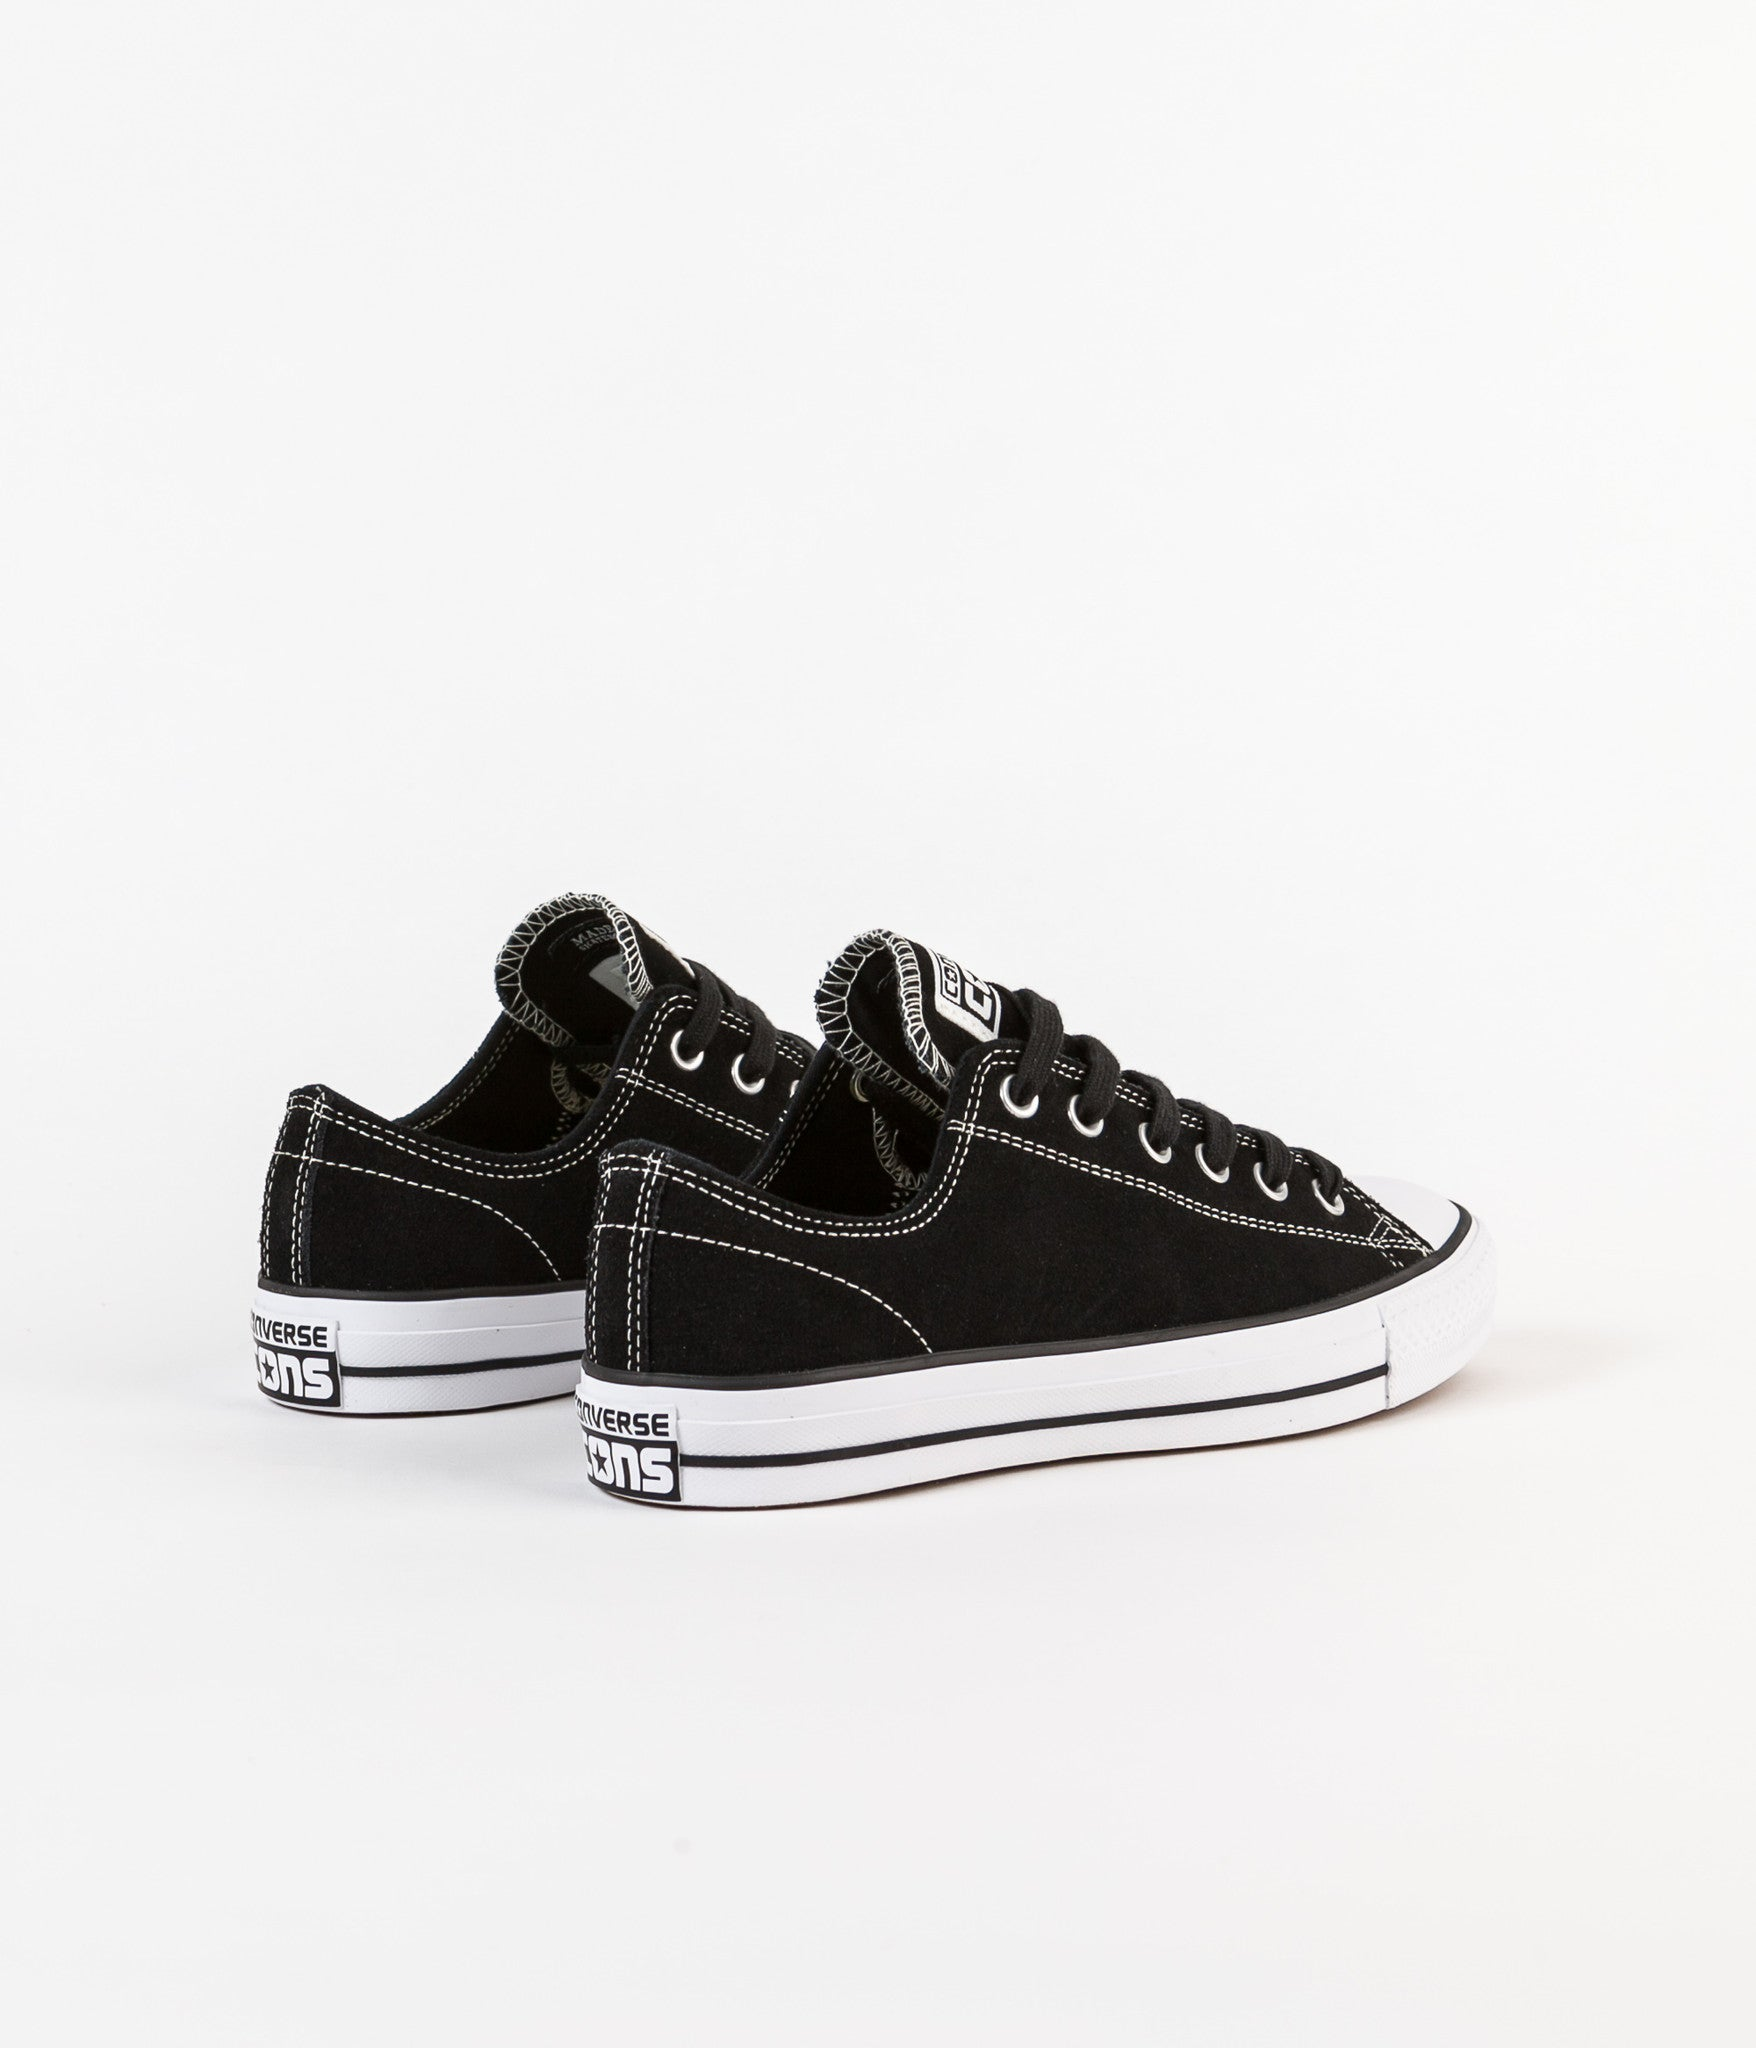 7addbc5cf775 ... Converse CTAS Pro Ox Shoes - Black   White ...